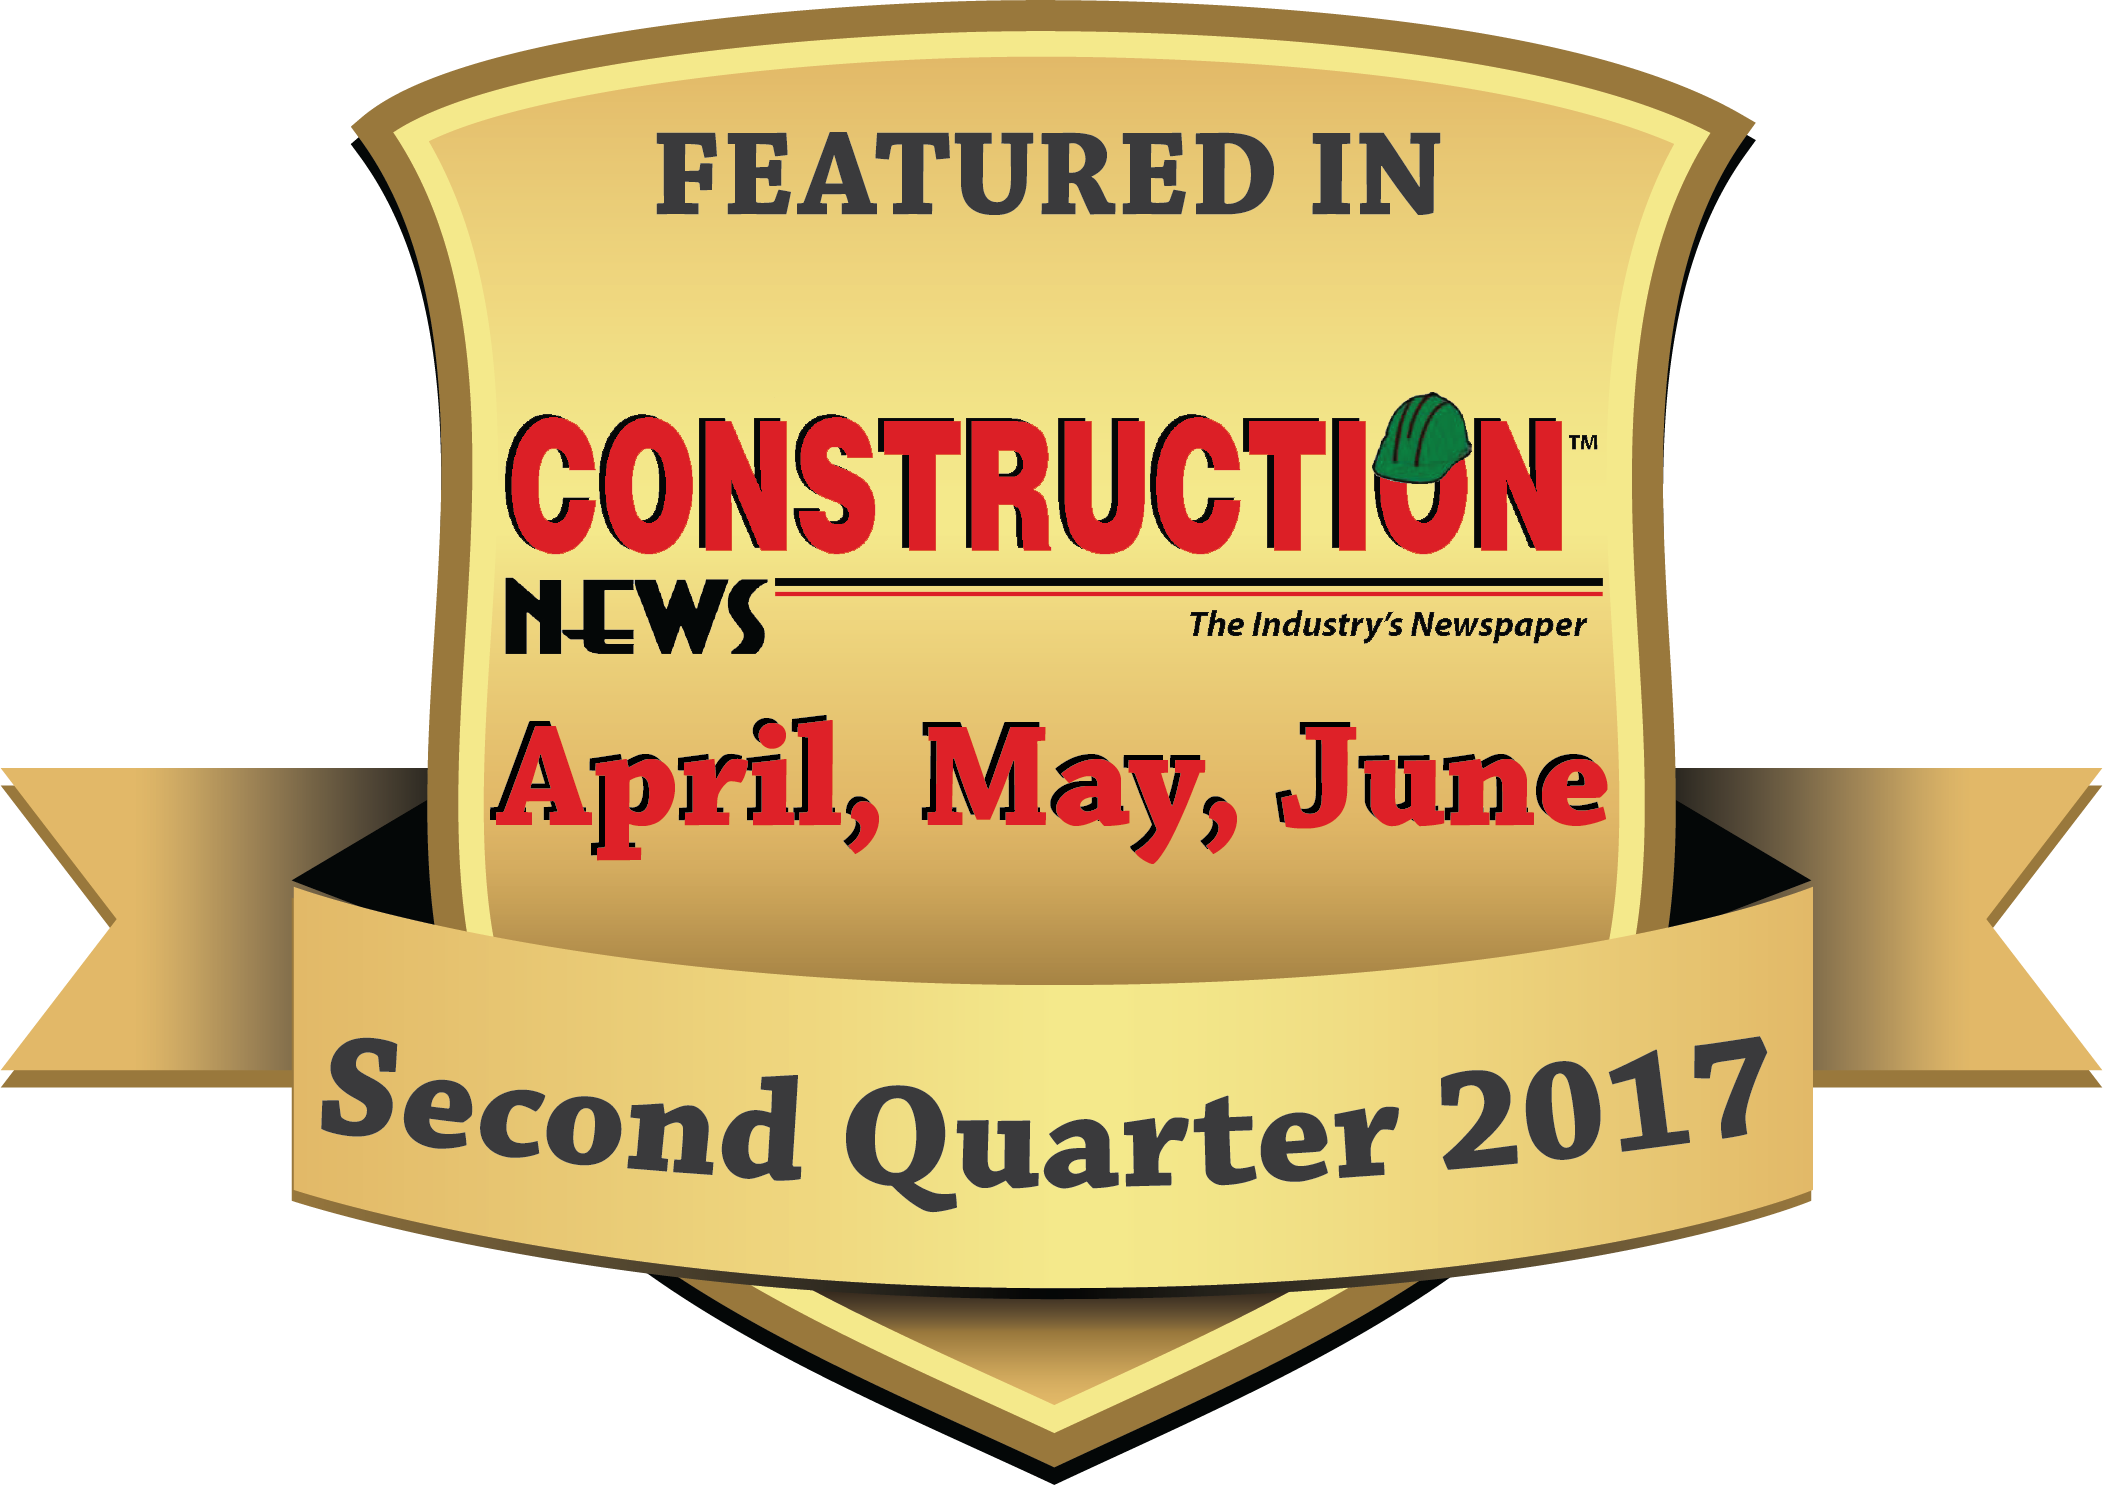 FEATURED IN Construction News